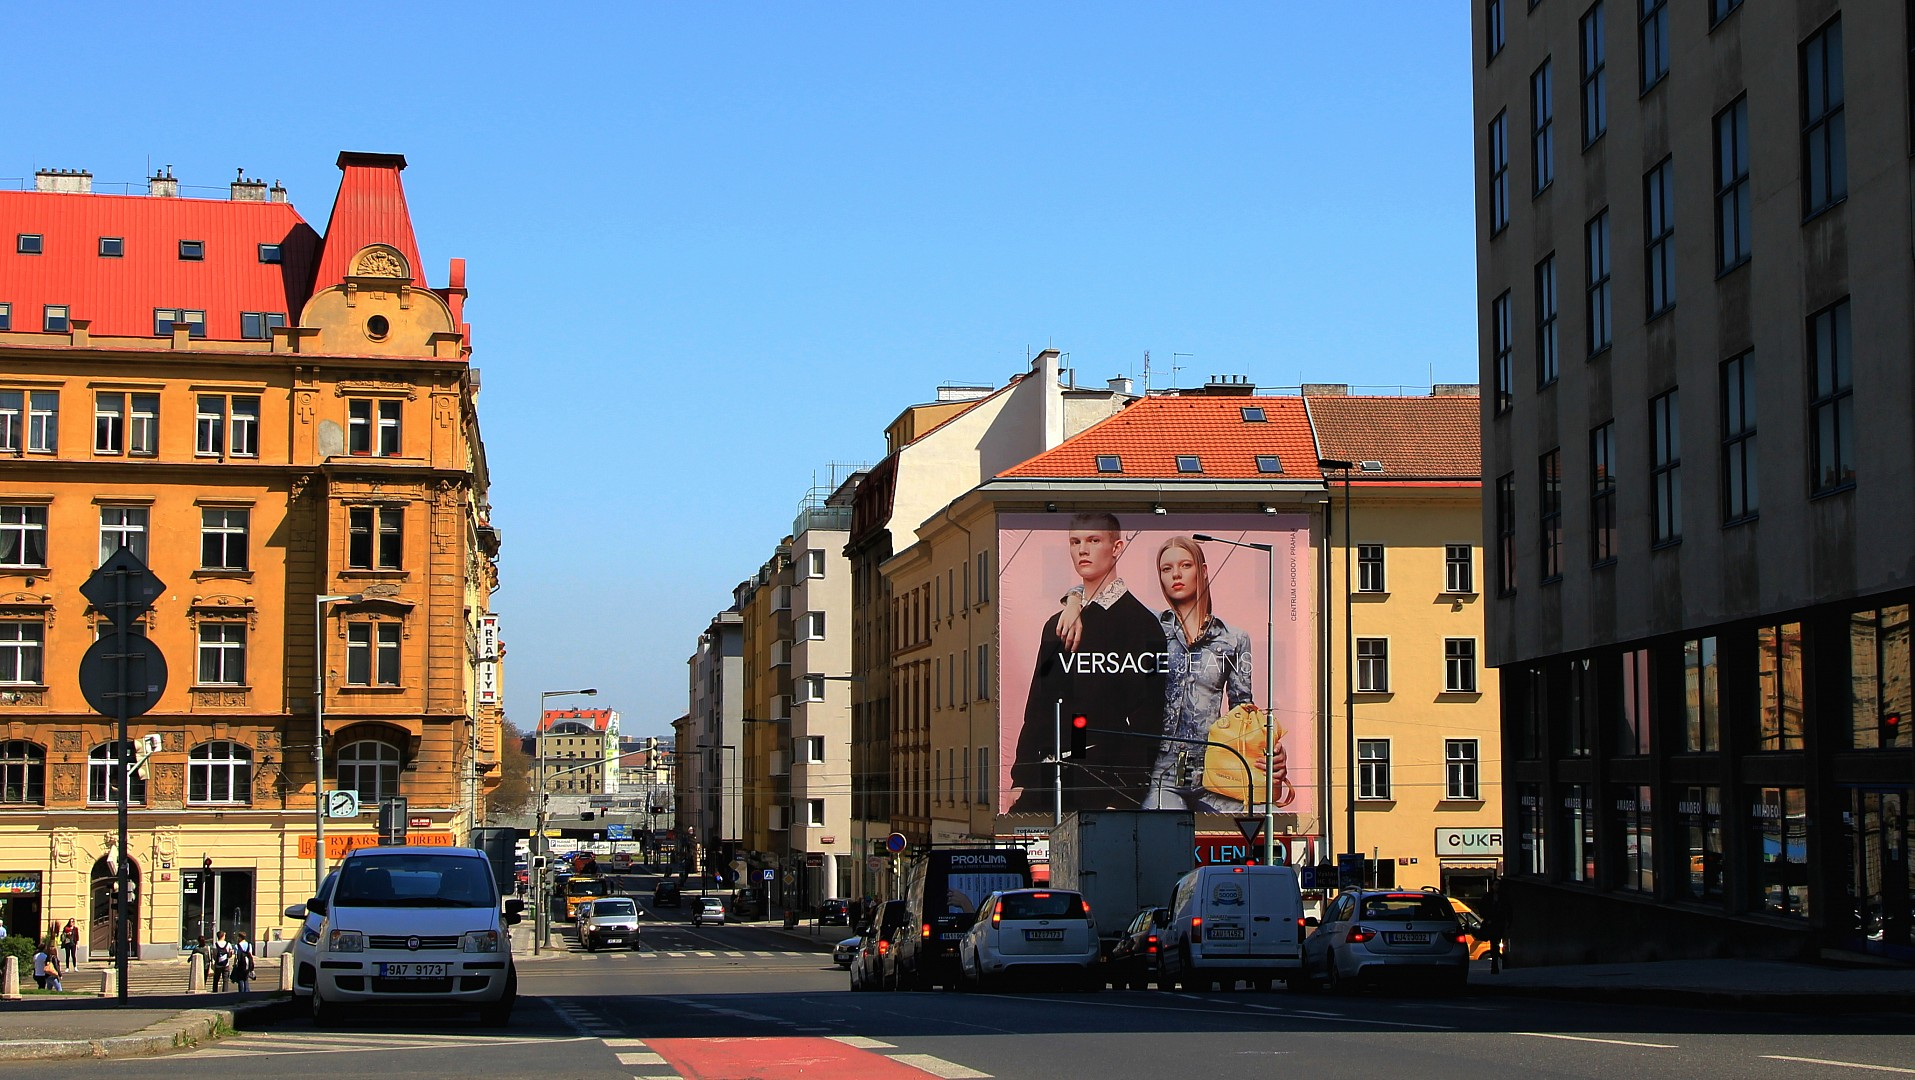 Versace Jeans on wallscapes in Prague that cannot be overlooked